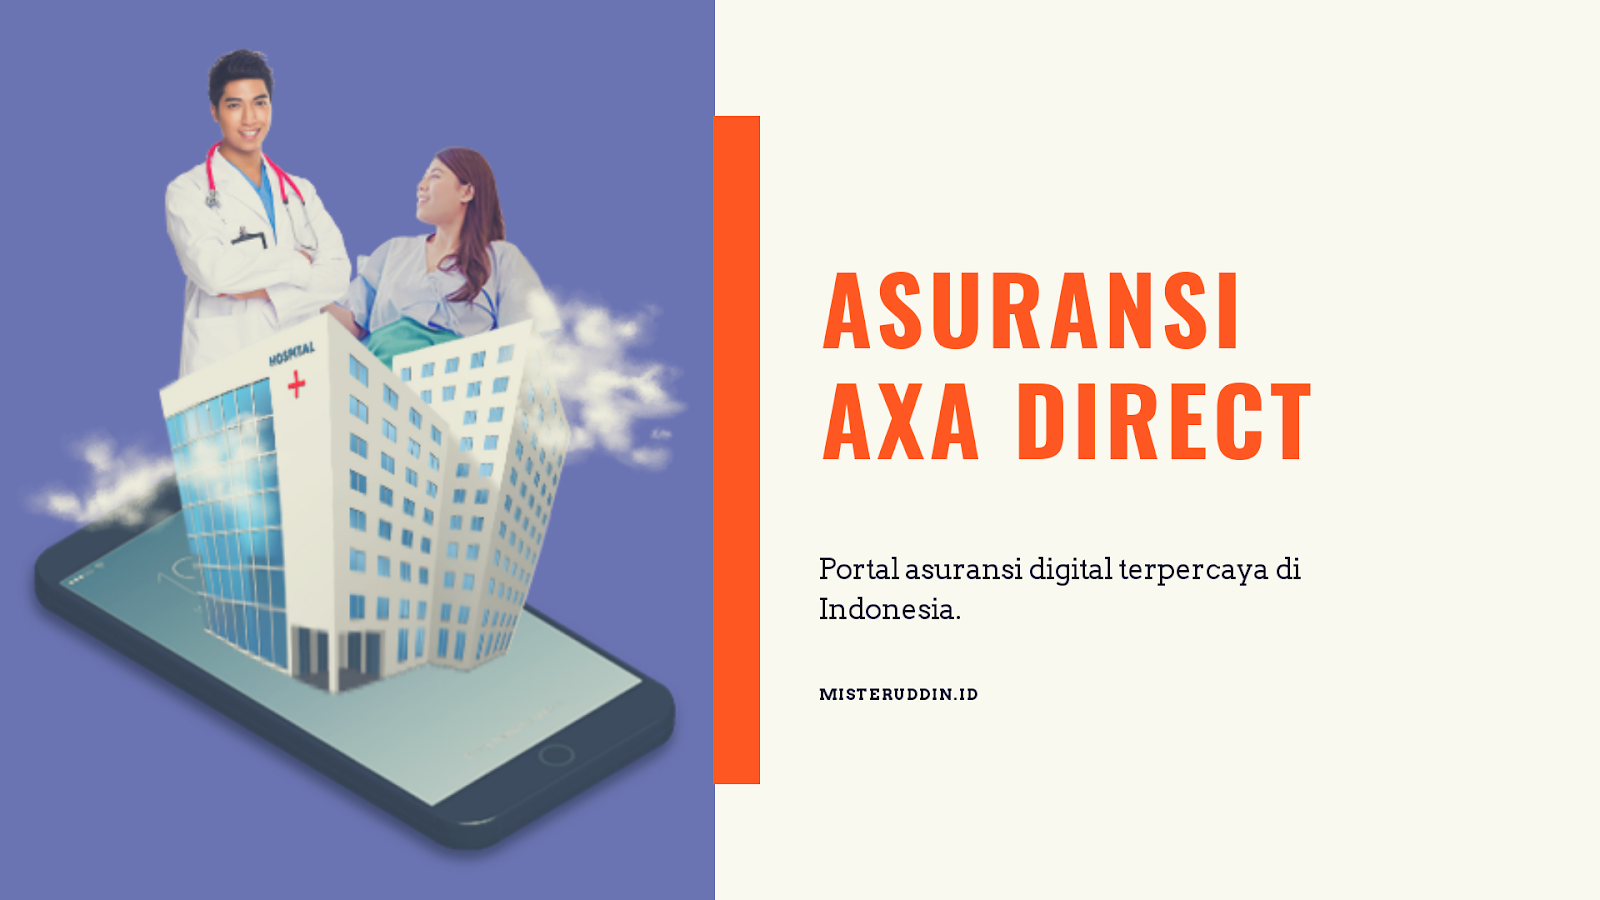 Asuransi axa direct